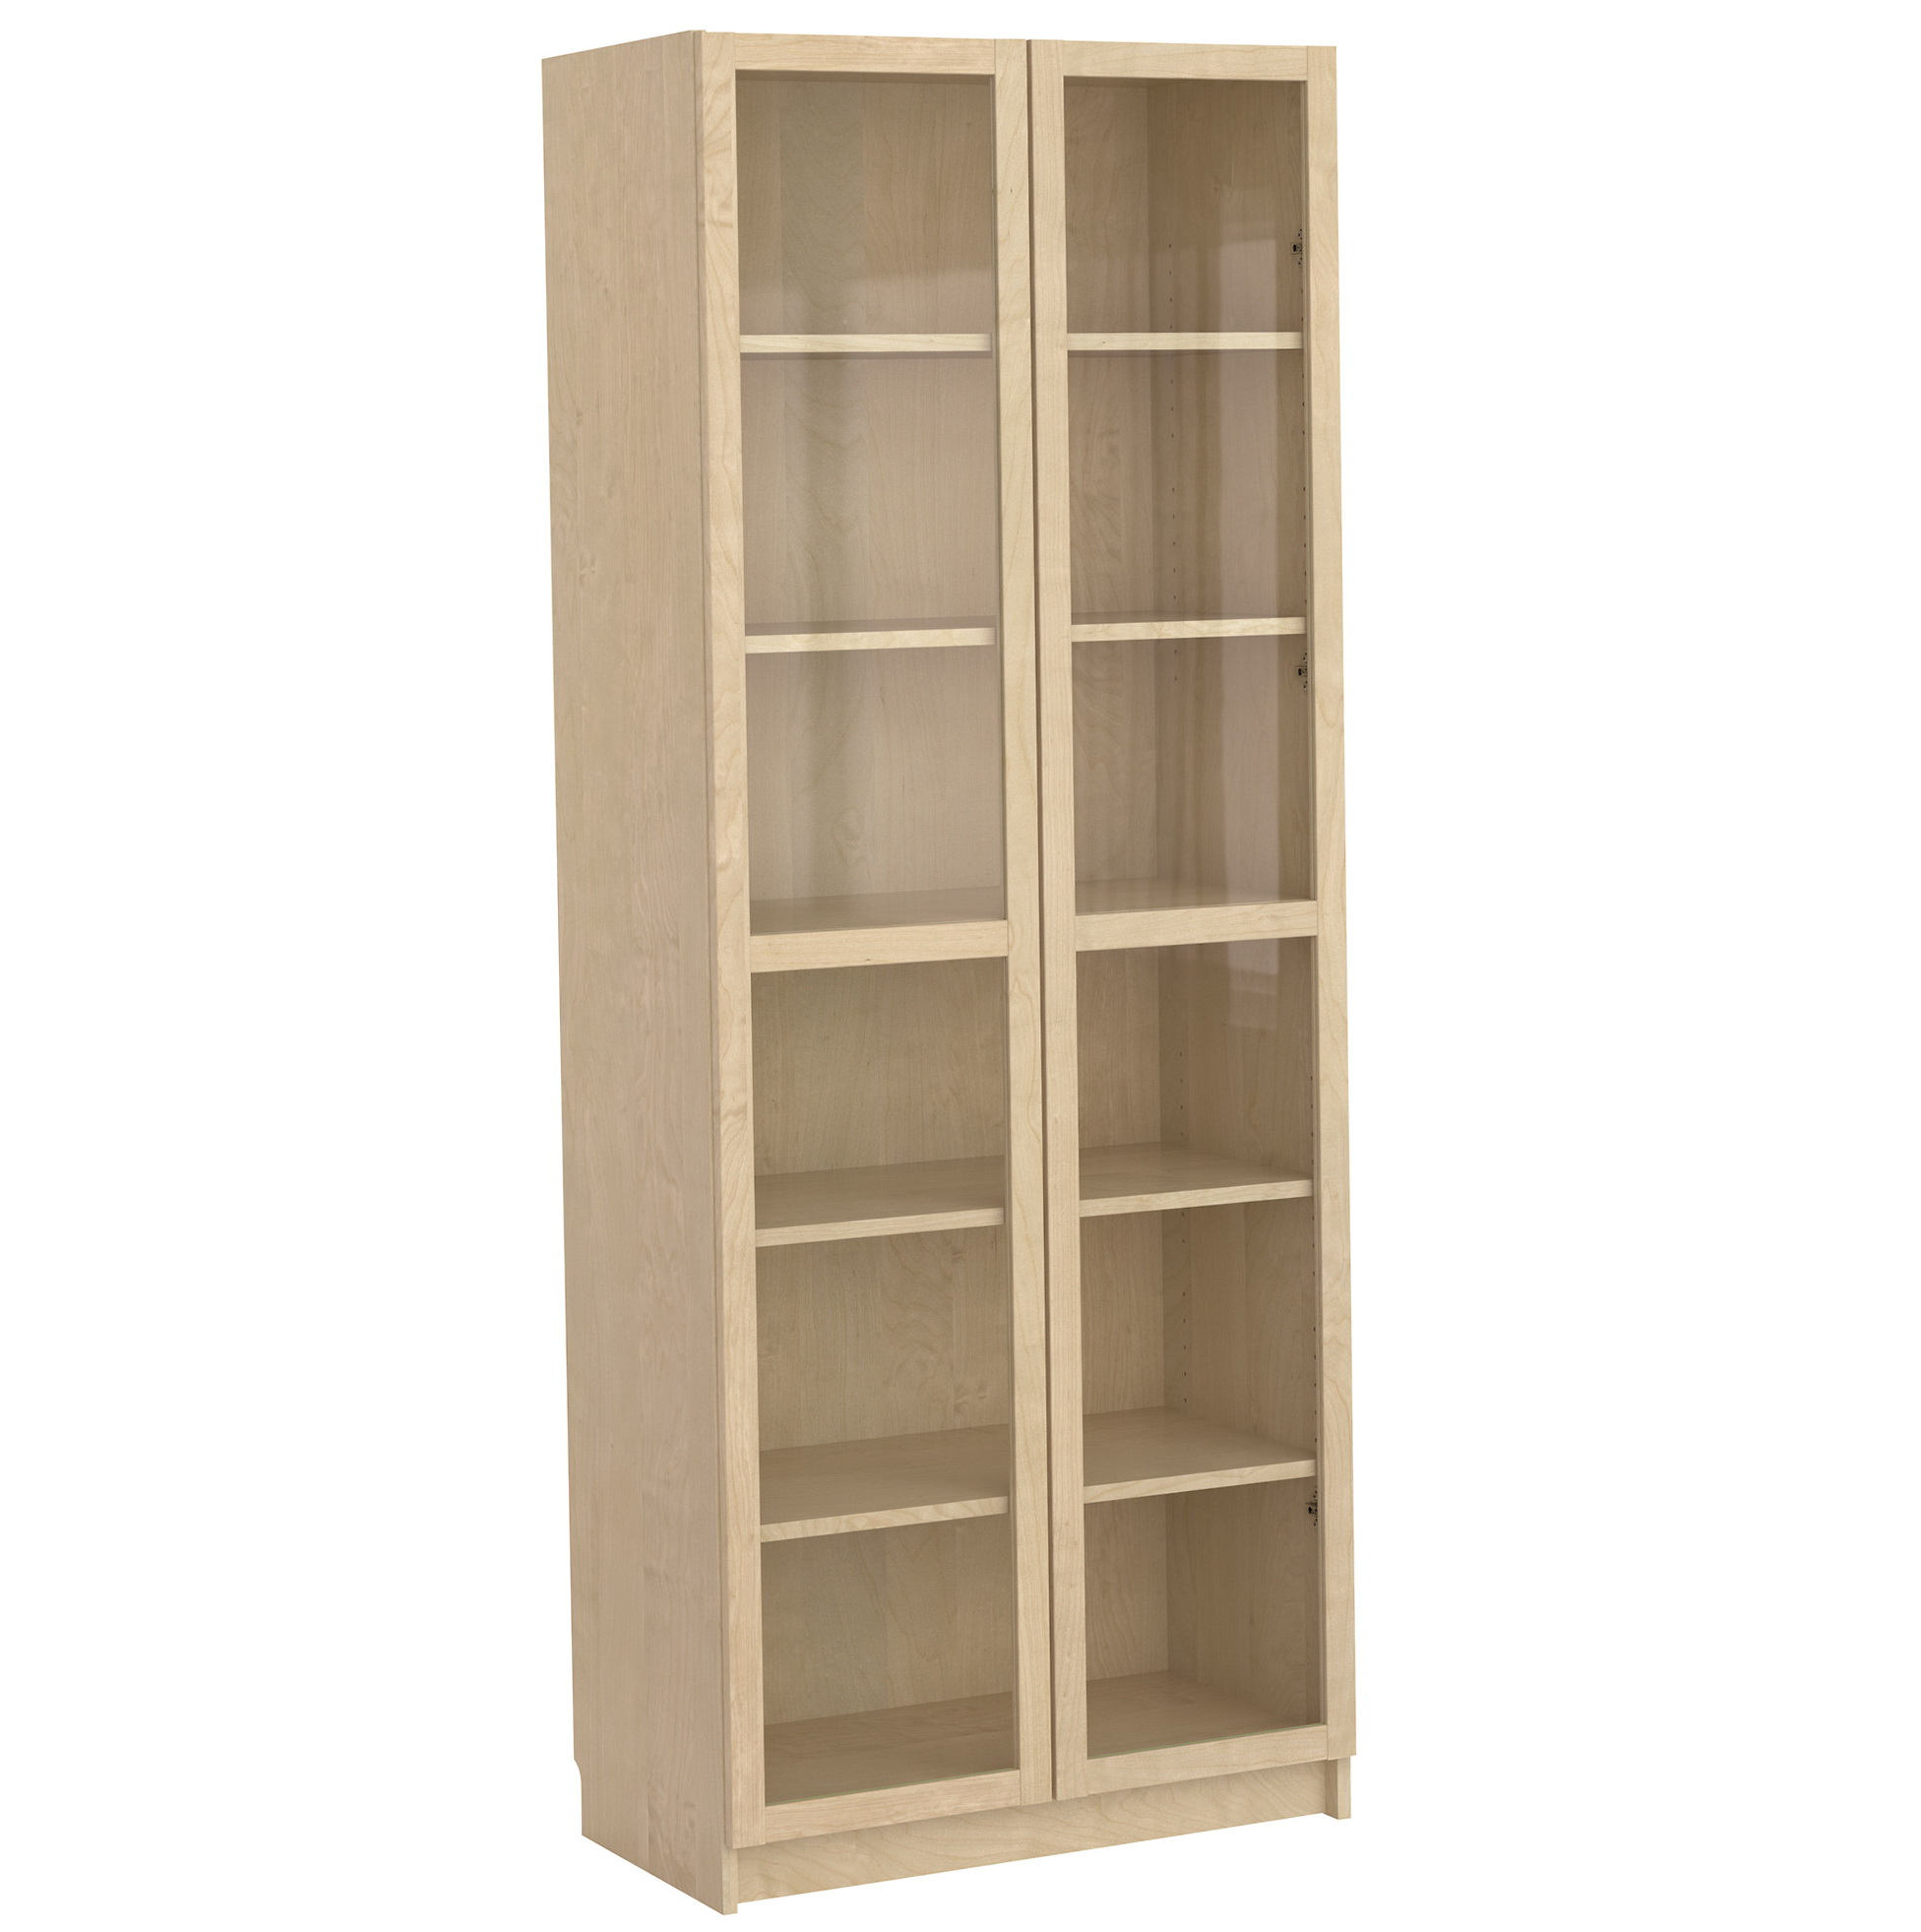 6 Shelf Bookcase With Doors